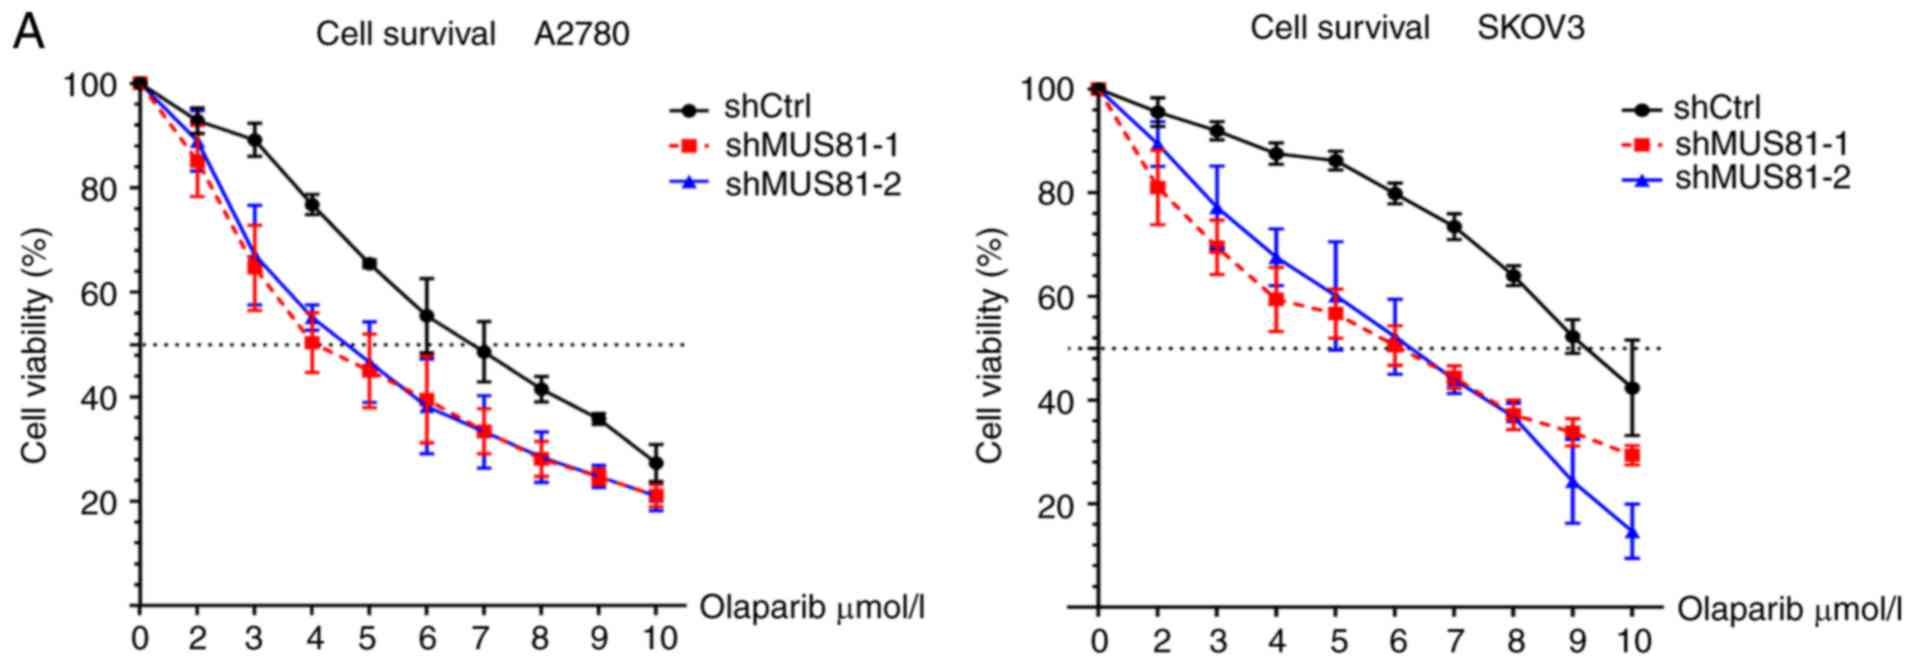 Inhibition Of Mus81 Improves The Chemical Sensitivity Of Olaparib By Regulating Mcm2 In Epithelial Ovarian Cancer